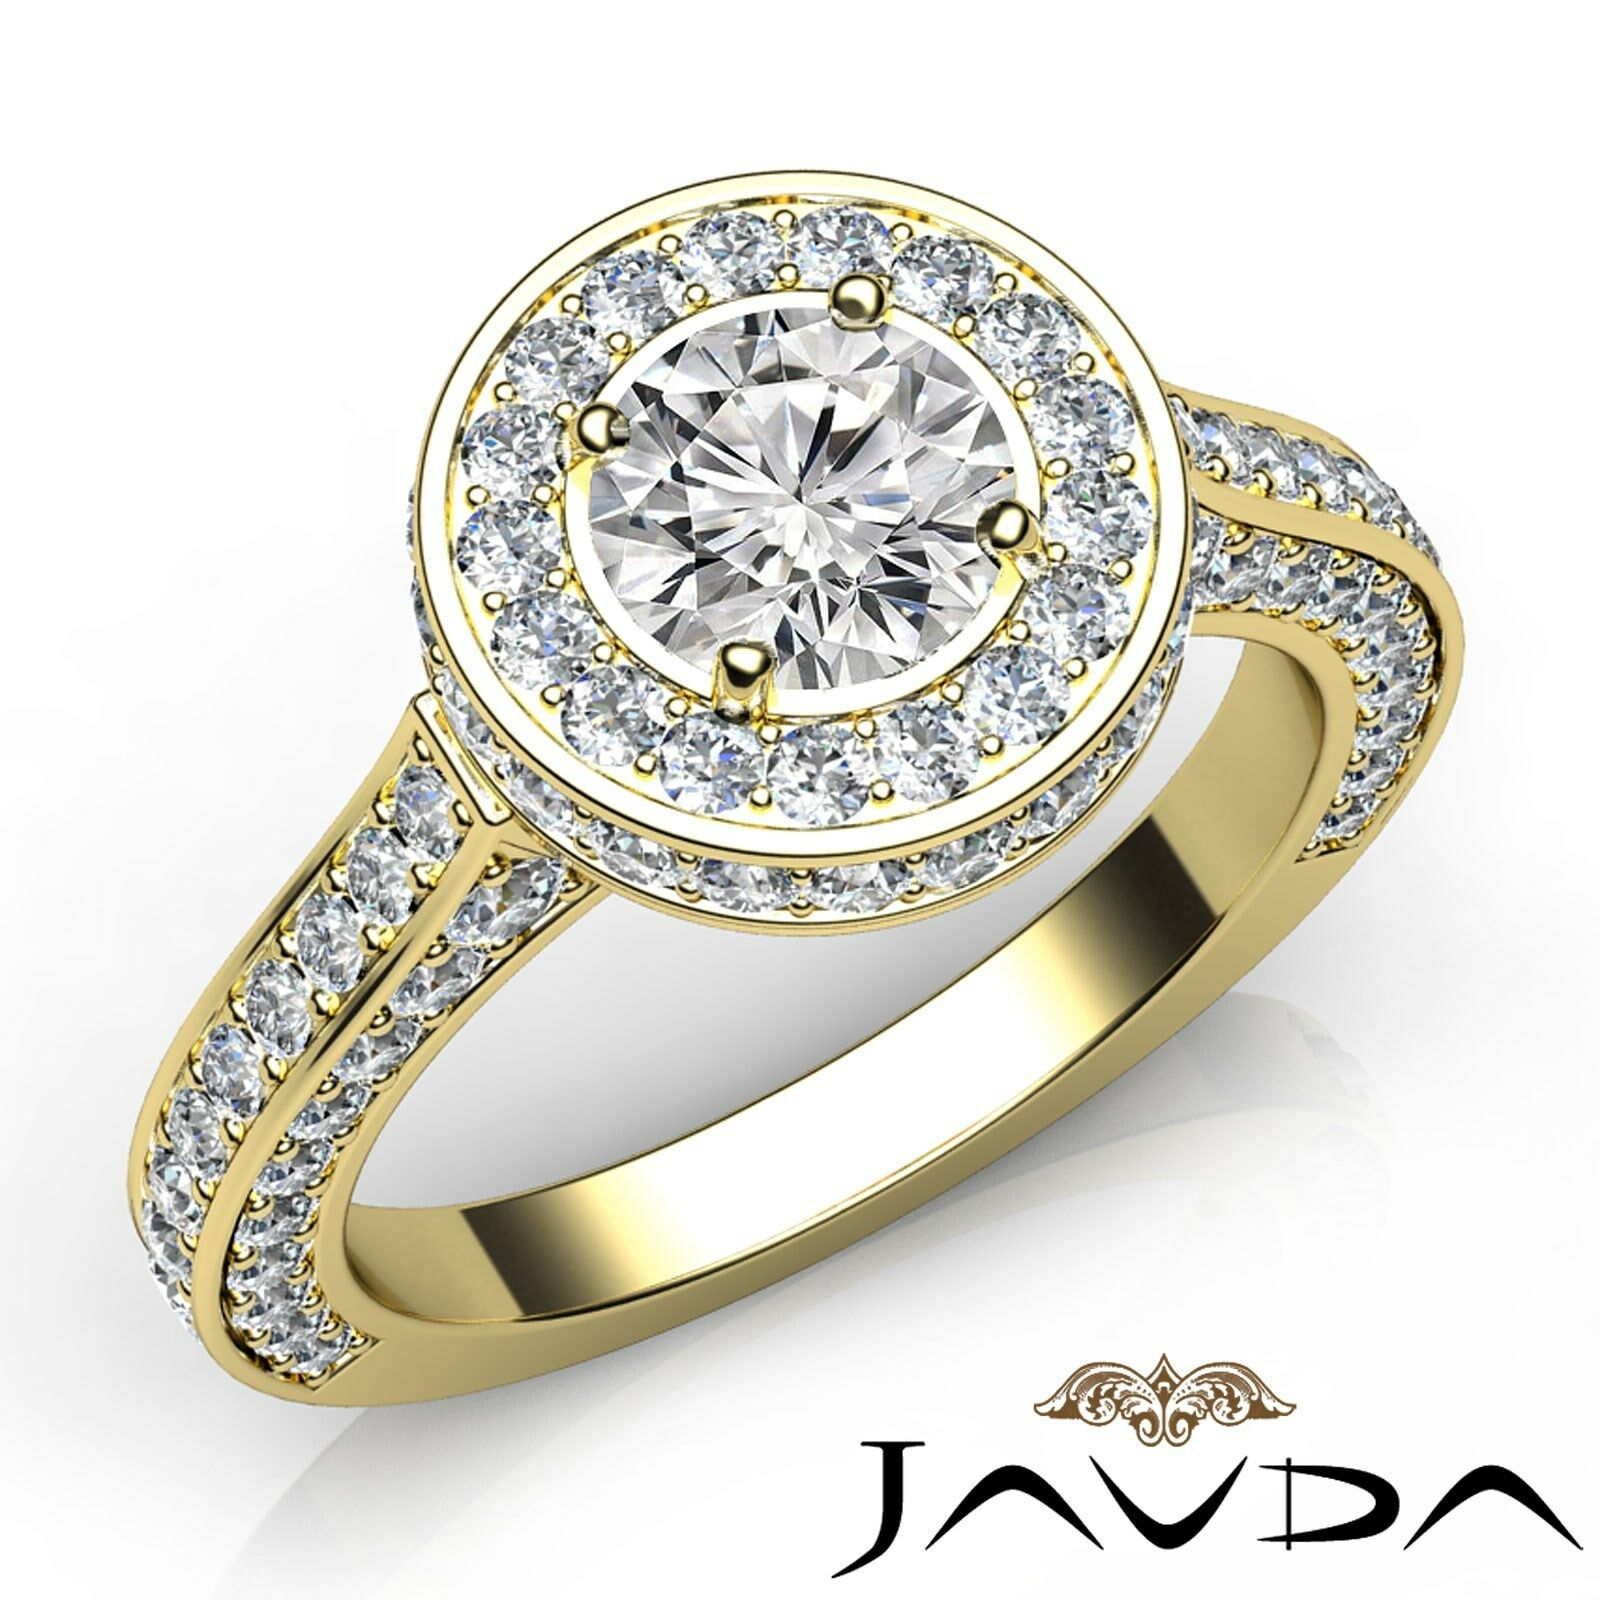 Circa Halo Pave Set Round Shape Diamond Engagement Filigree Ring GIA F VS1 3.1Ct